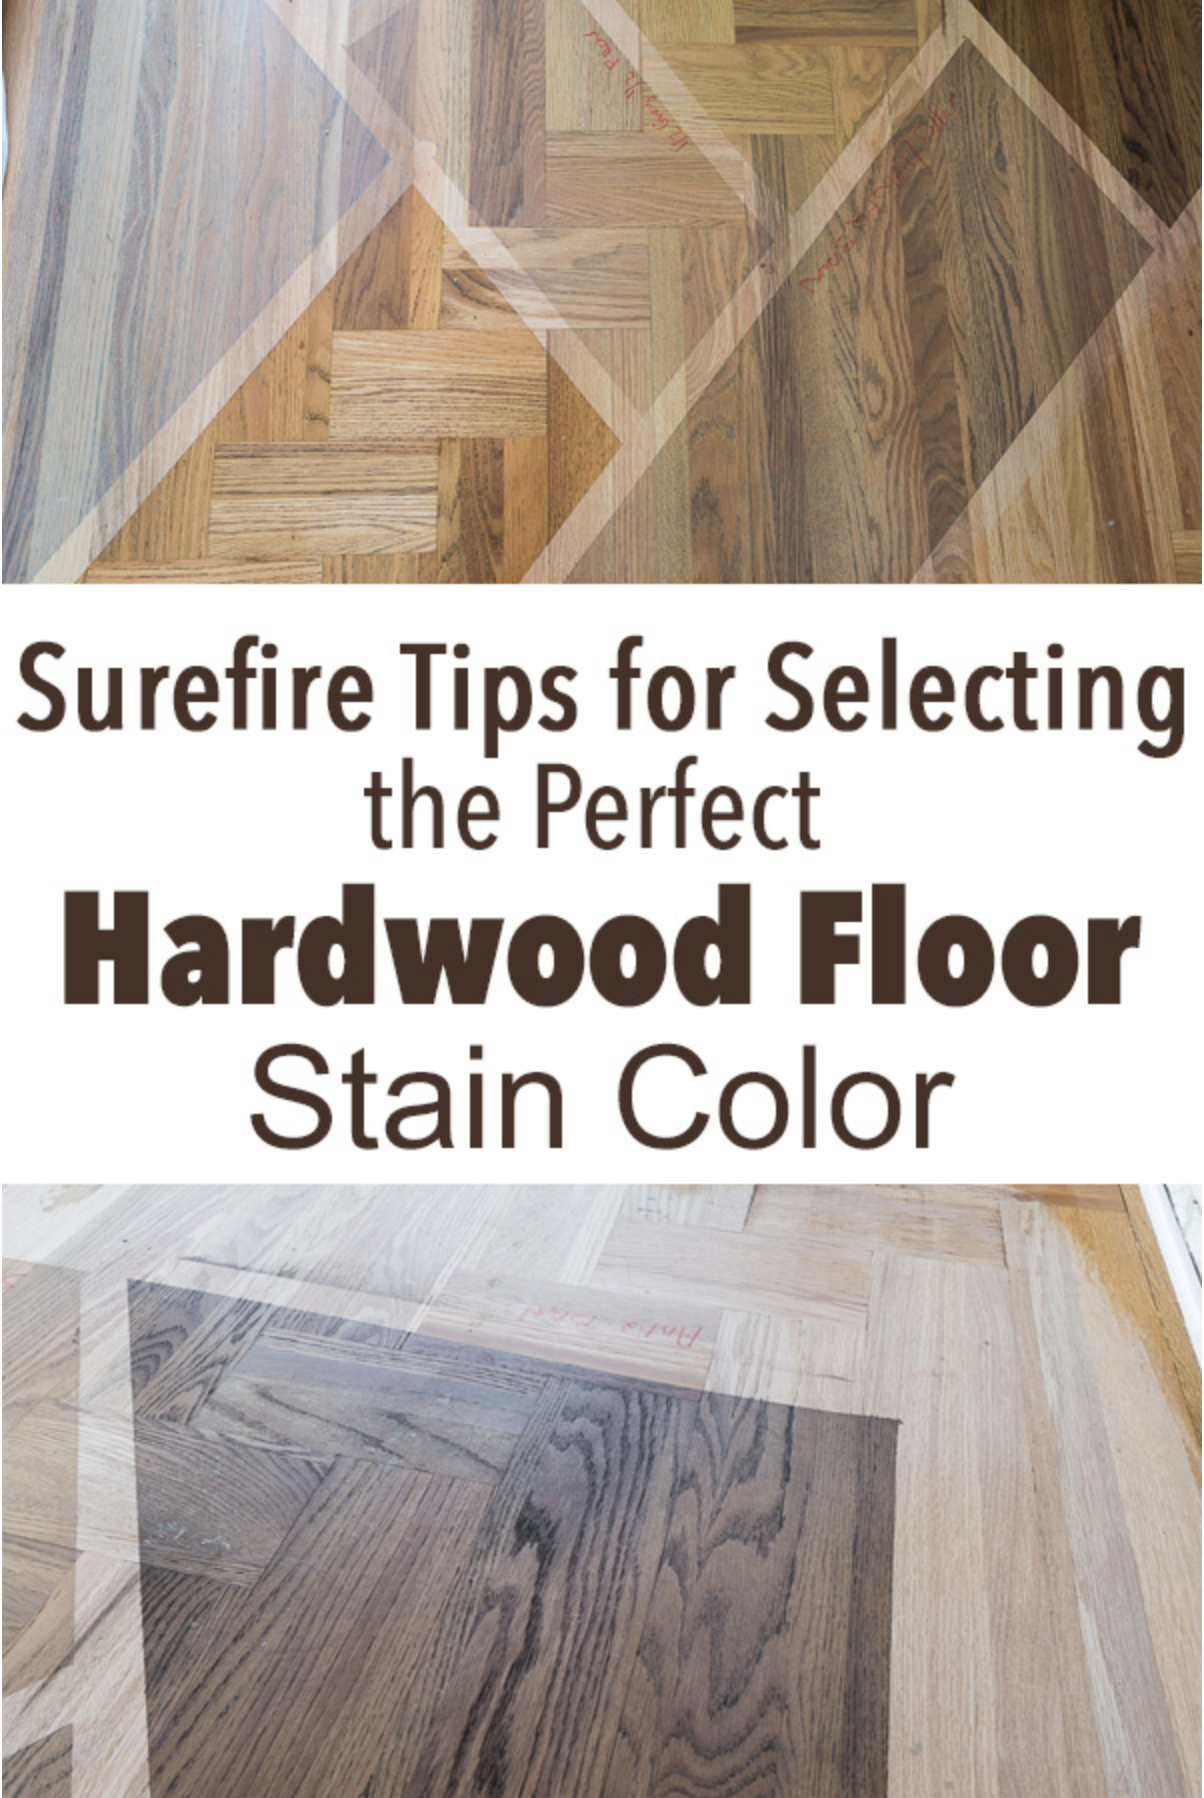 Choosing A Wood Floor Stain Color For My Kitchen Living Room Floor Stain Colors Wood Floor Stain Colors Floor Stain